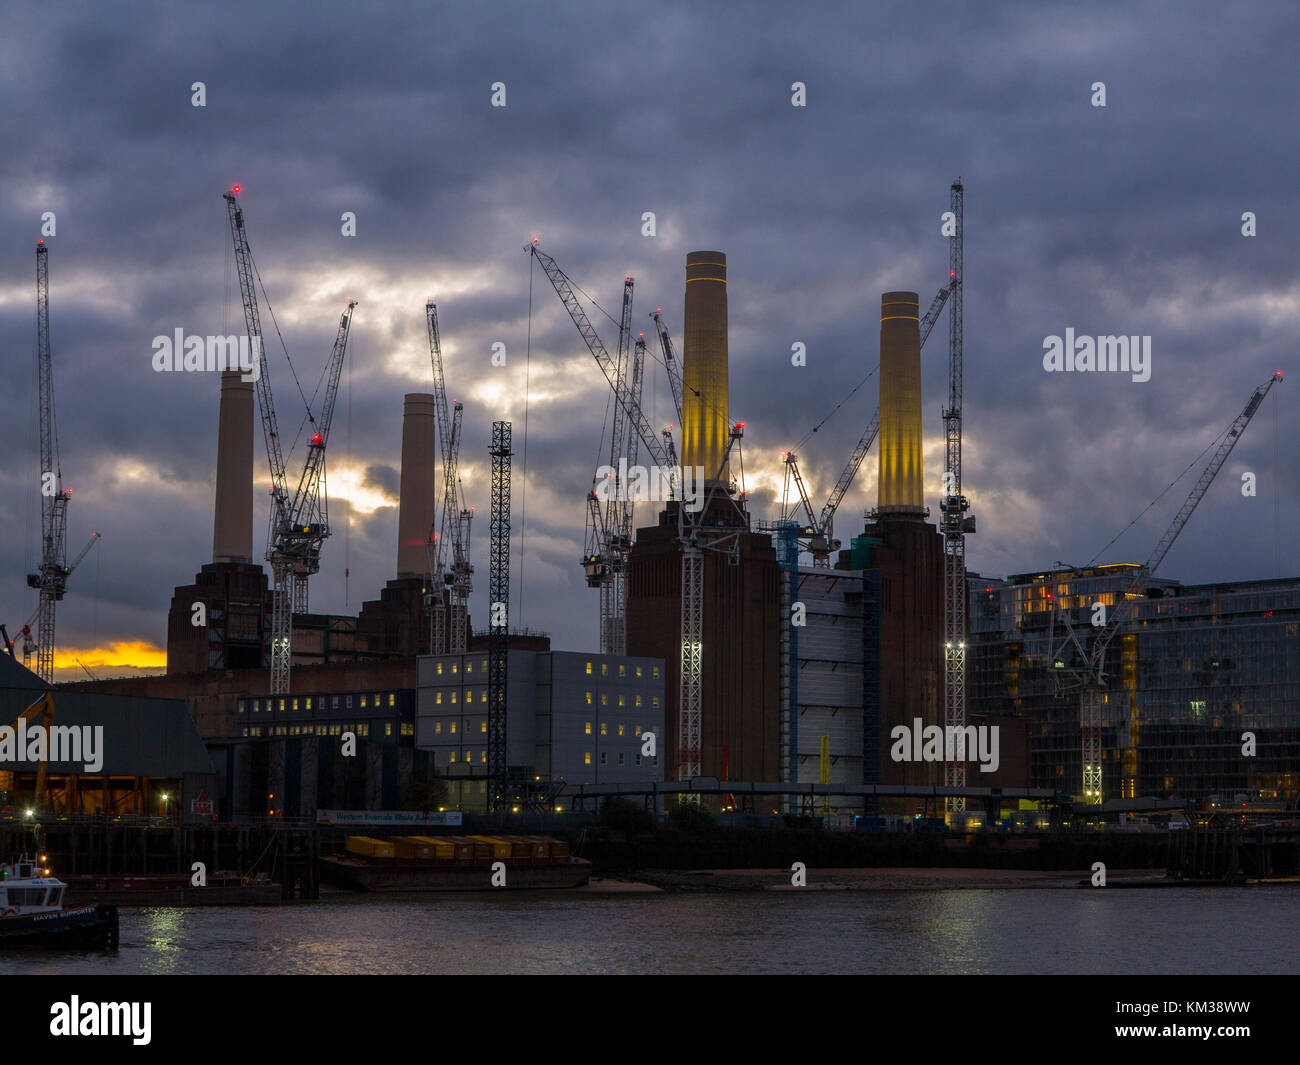 Battersea Power Station under development - a complete change to the remote industrial brown site building from - Stock Image